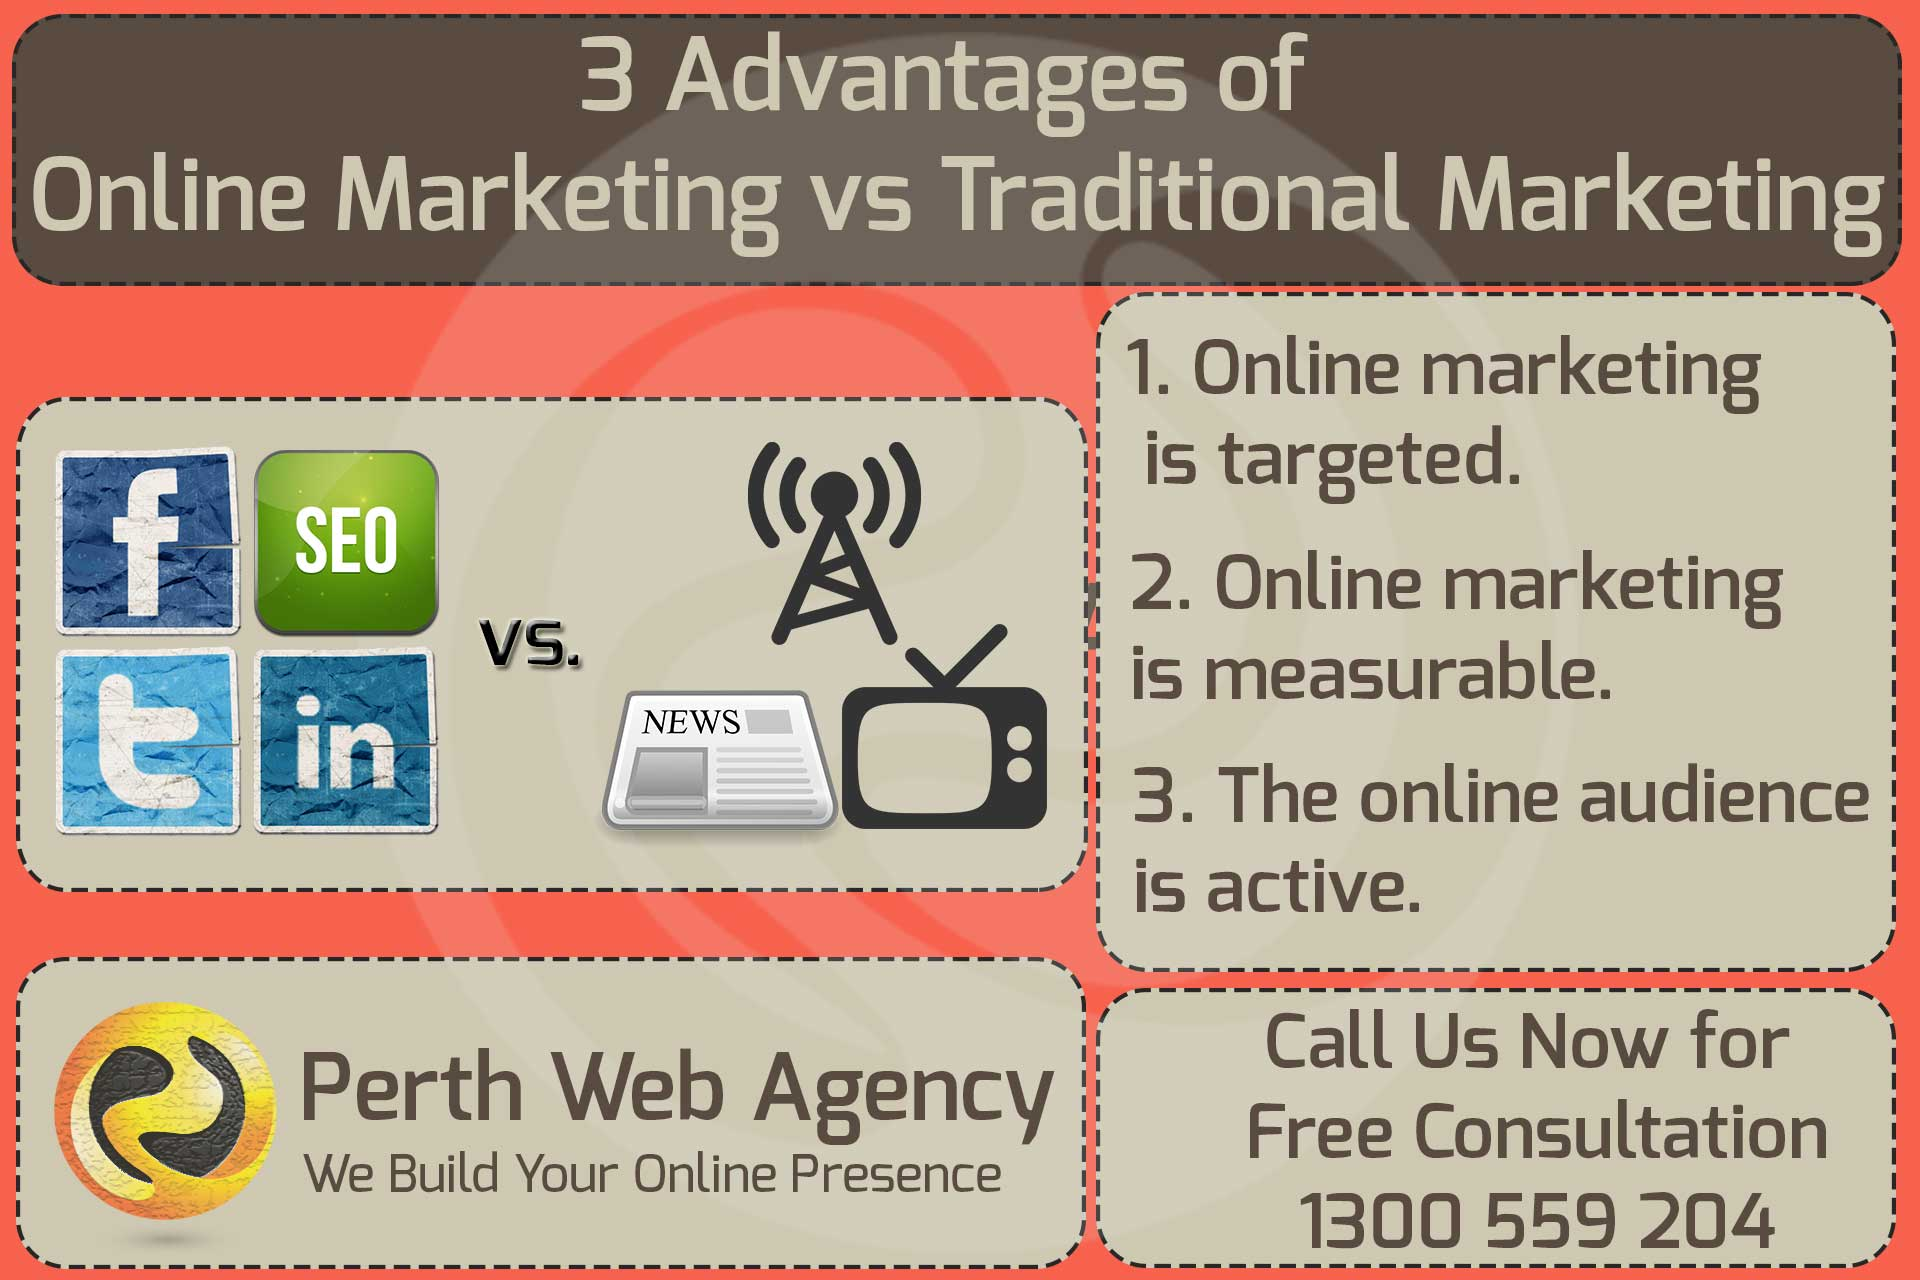 online marketing vs traditional marketing In layman's terms, digital marketing is marketing done on digital platforms like  websites, mobile applications, display advertising, and other.